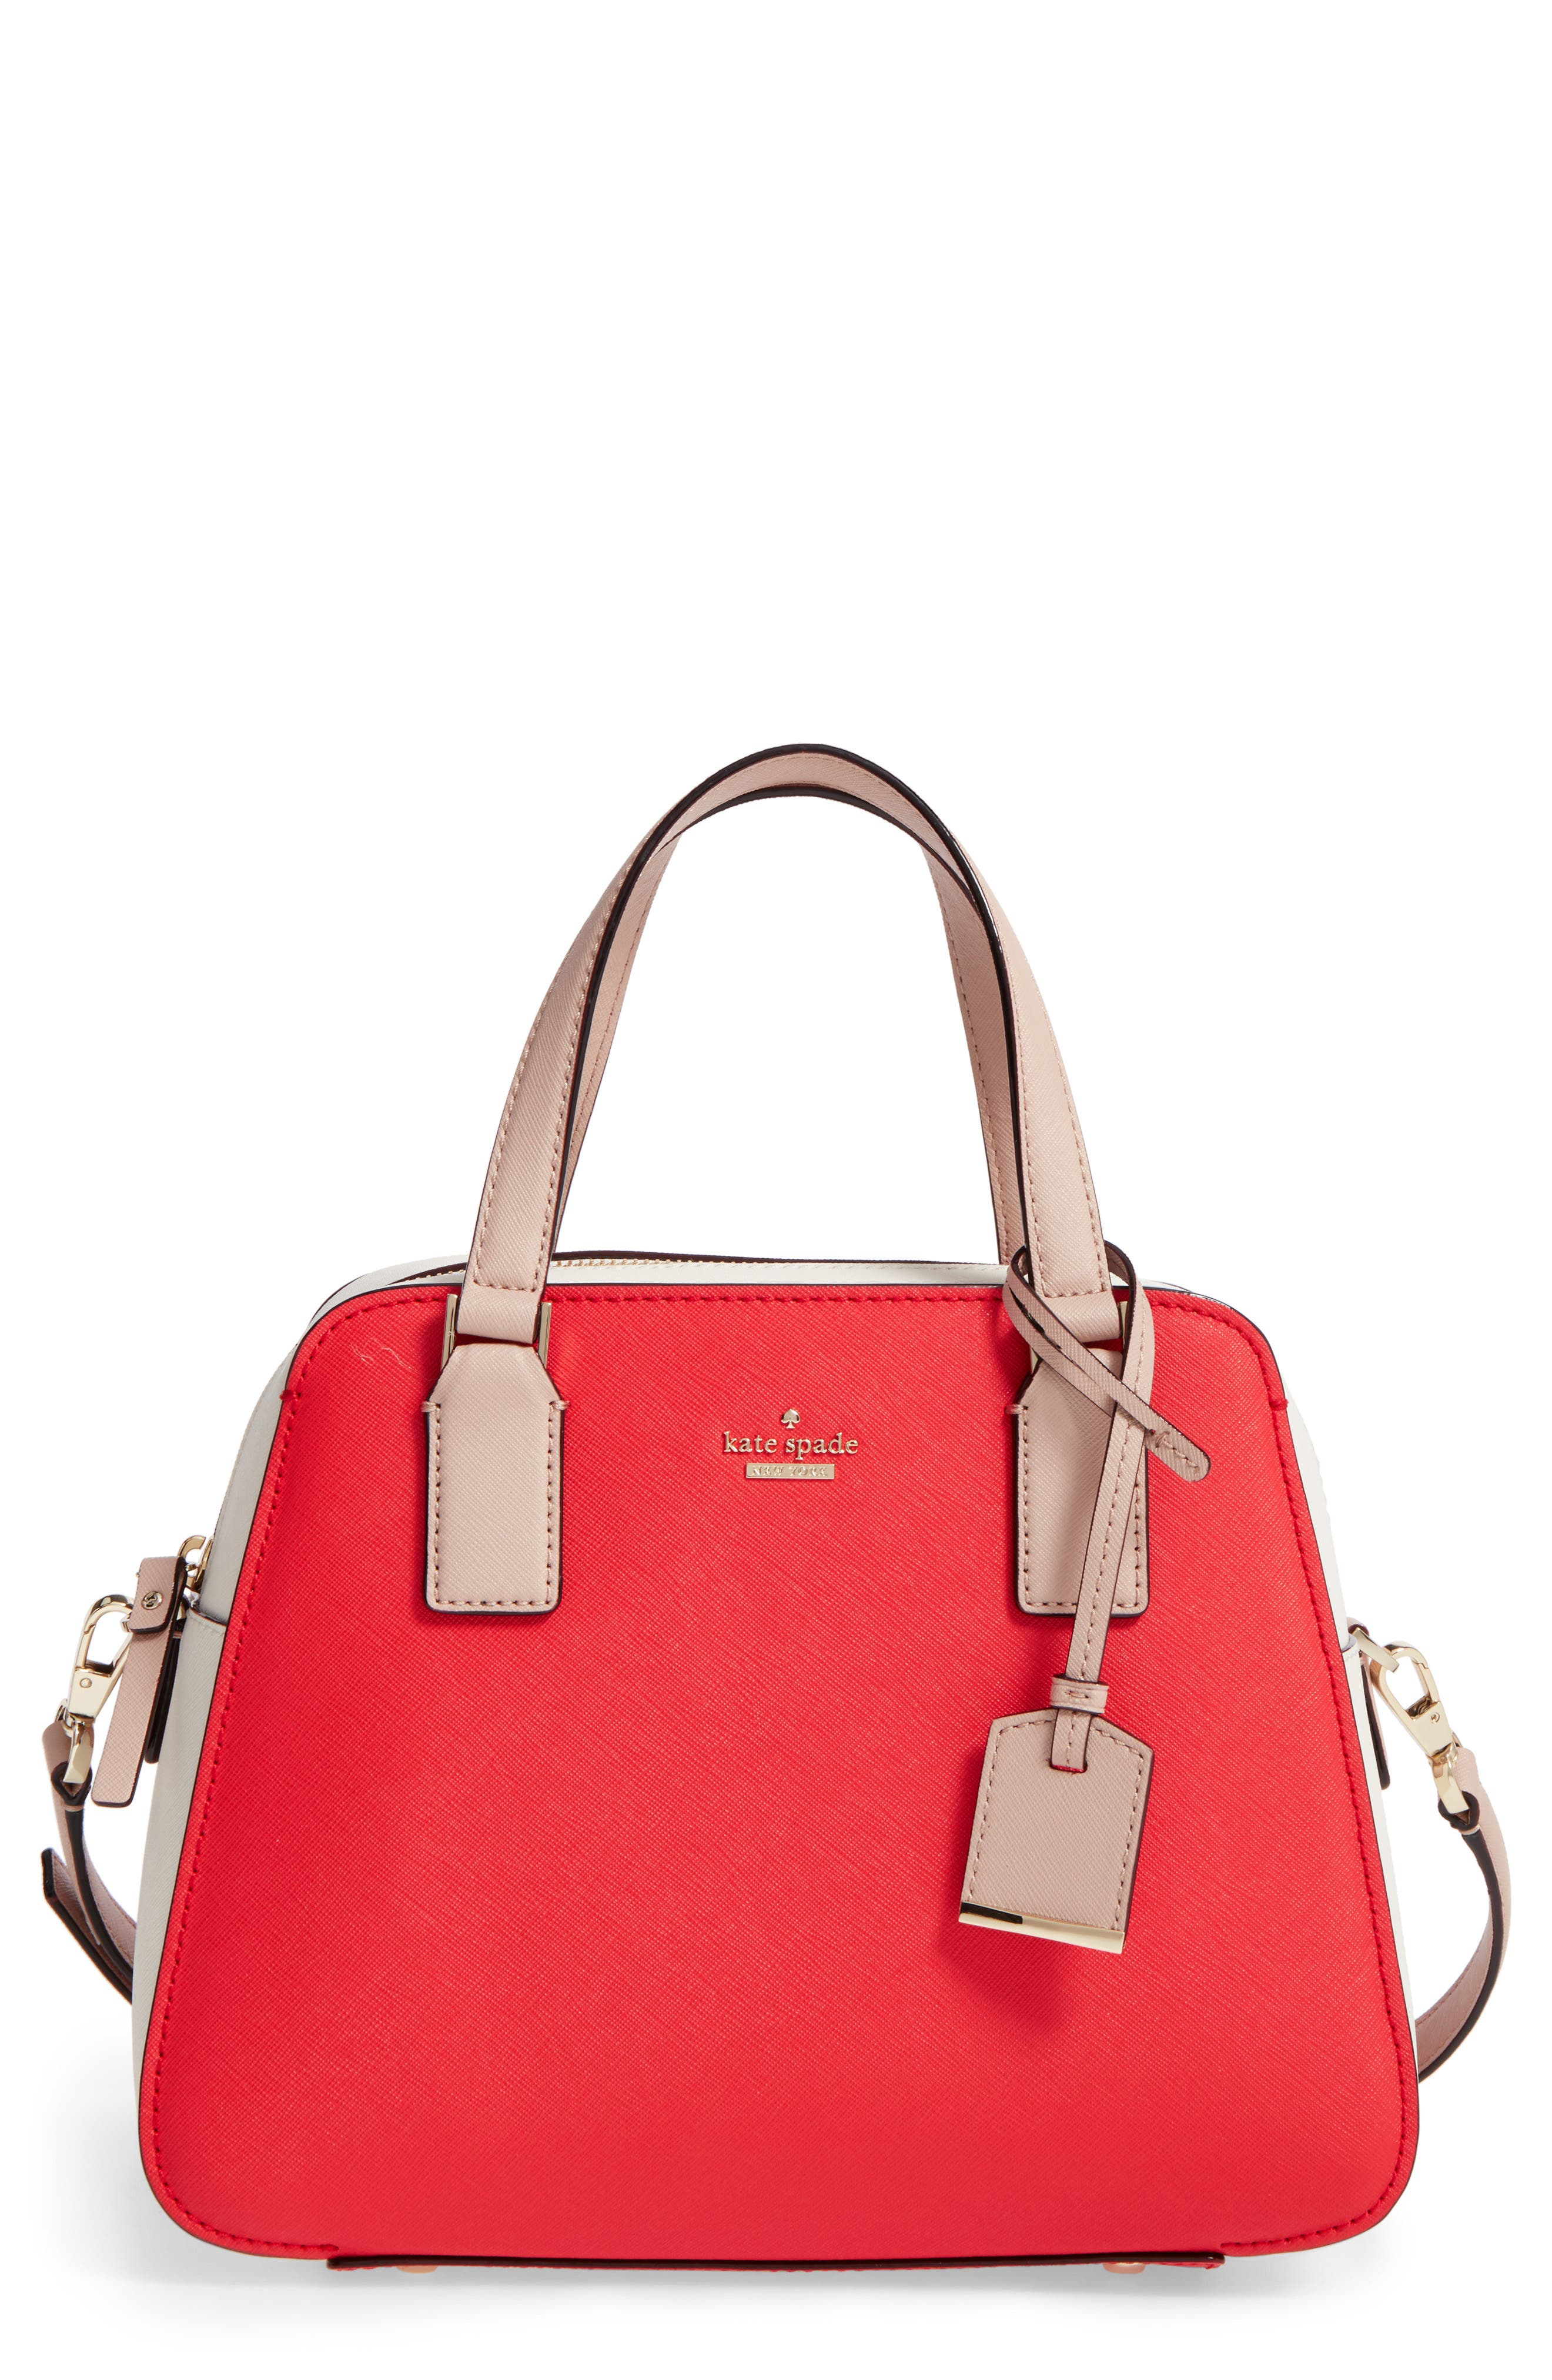 KATE SPADE NEW YORK cameron street - little